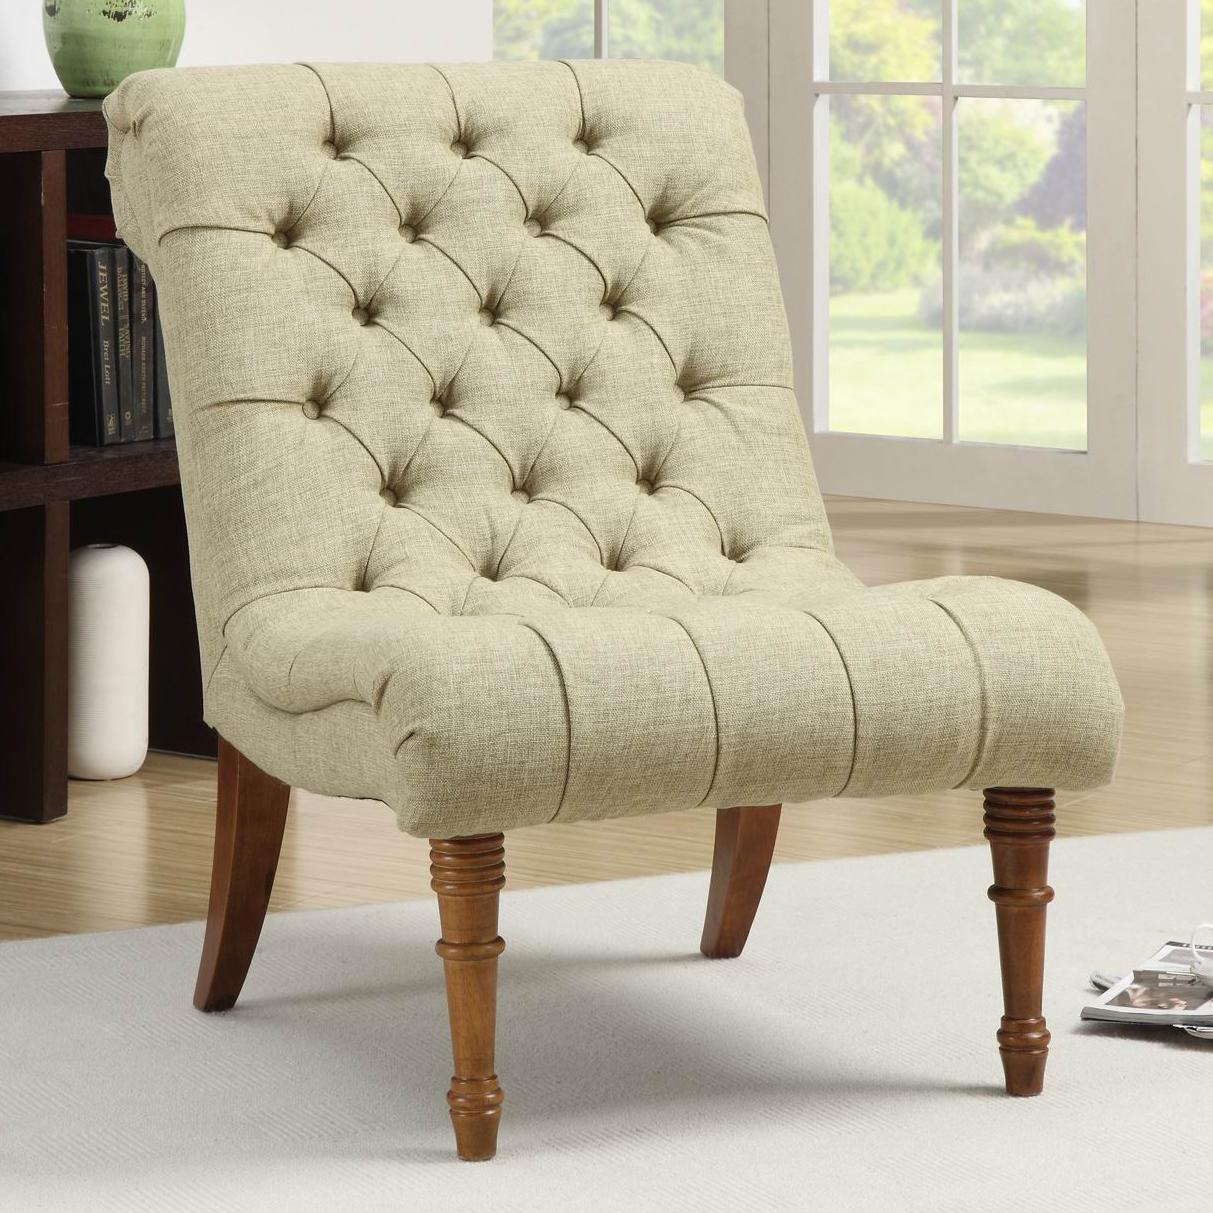 Tufted Accent Chair without Arms by Coaster | Wolf and Gardiner Wolf ...